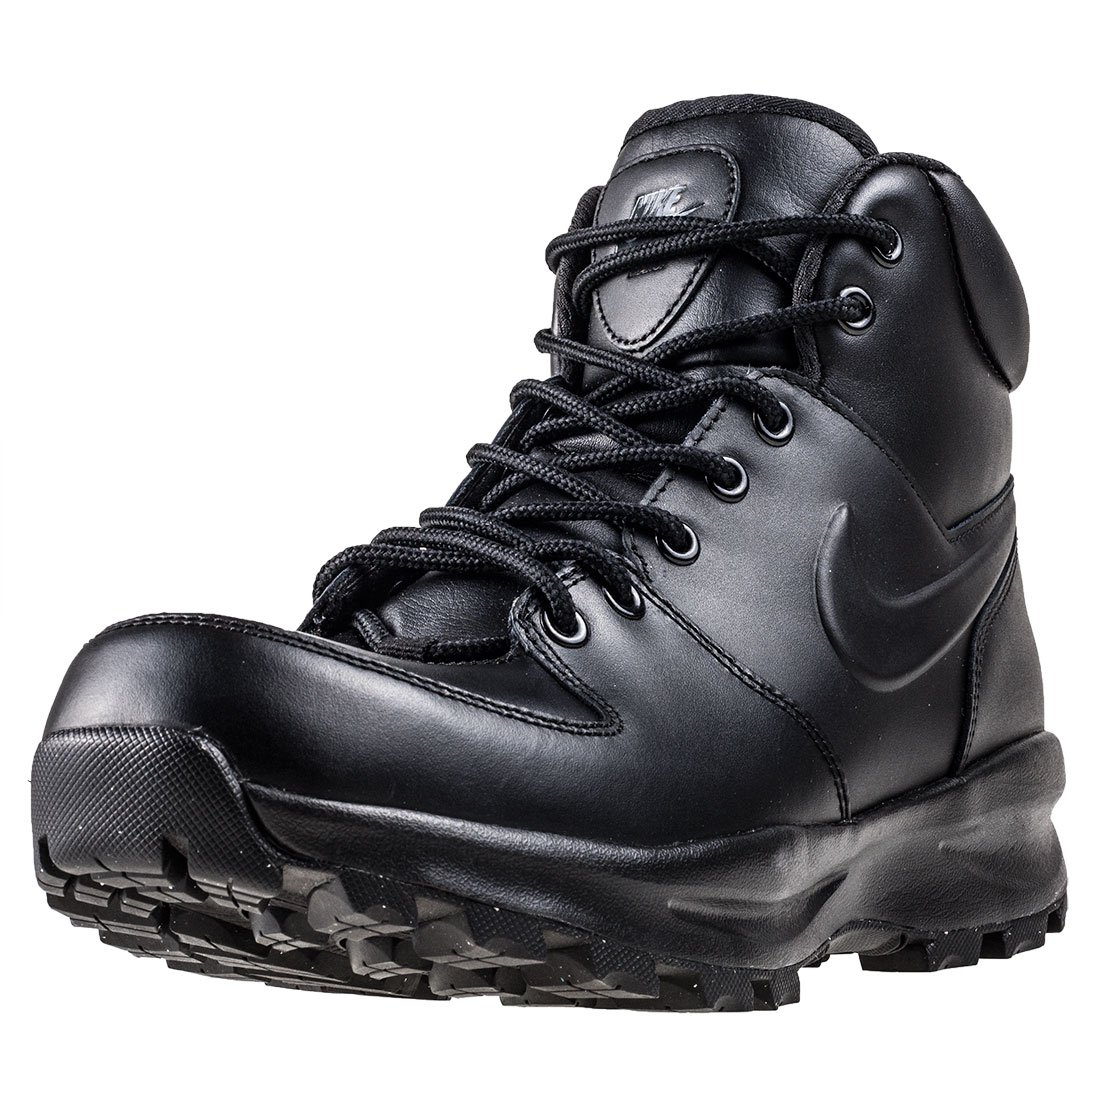 6636b15ca072fe Amazon.com  Nike Men s Manoa Leather Hiking Boot  Shoes